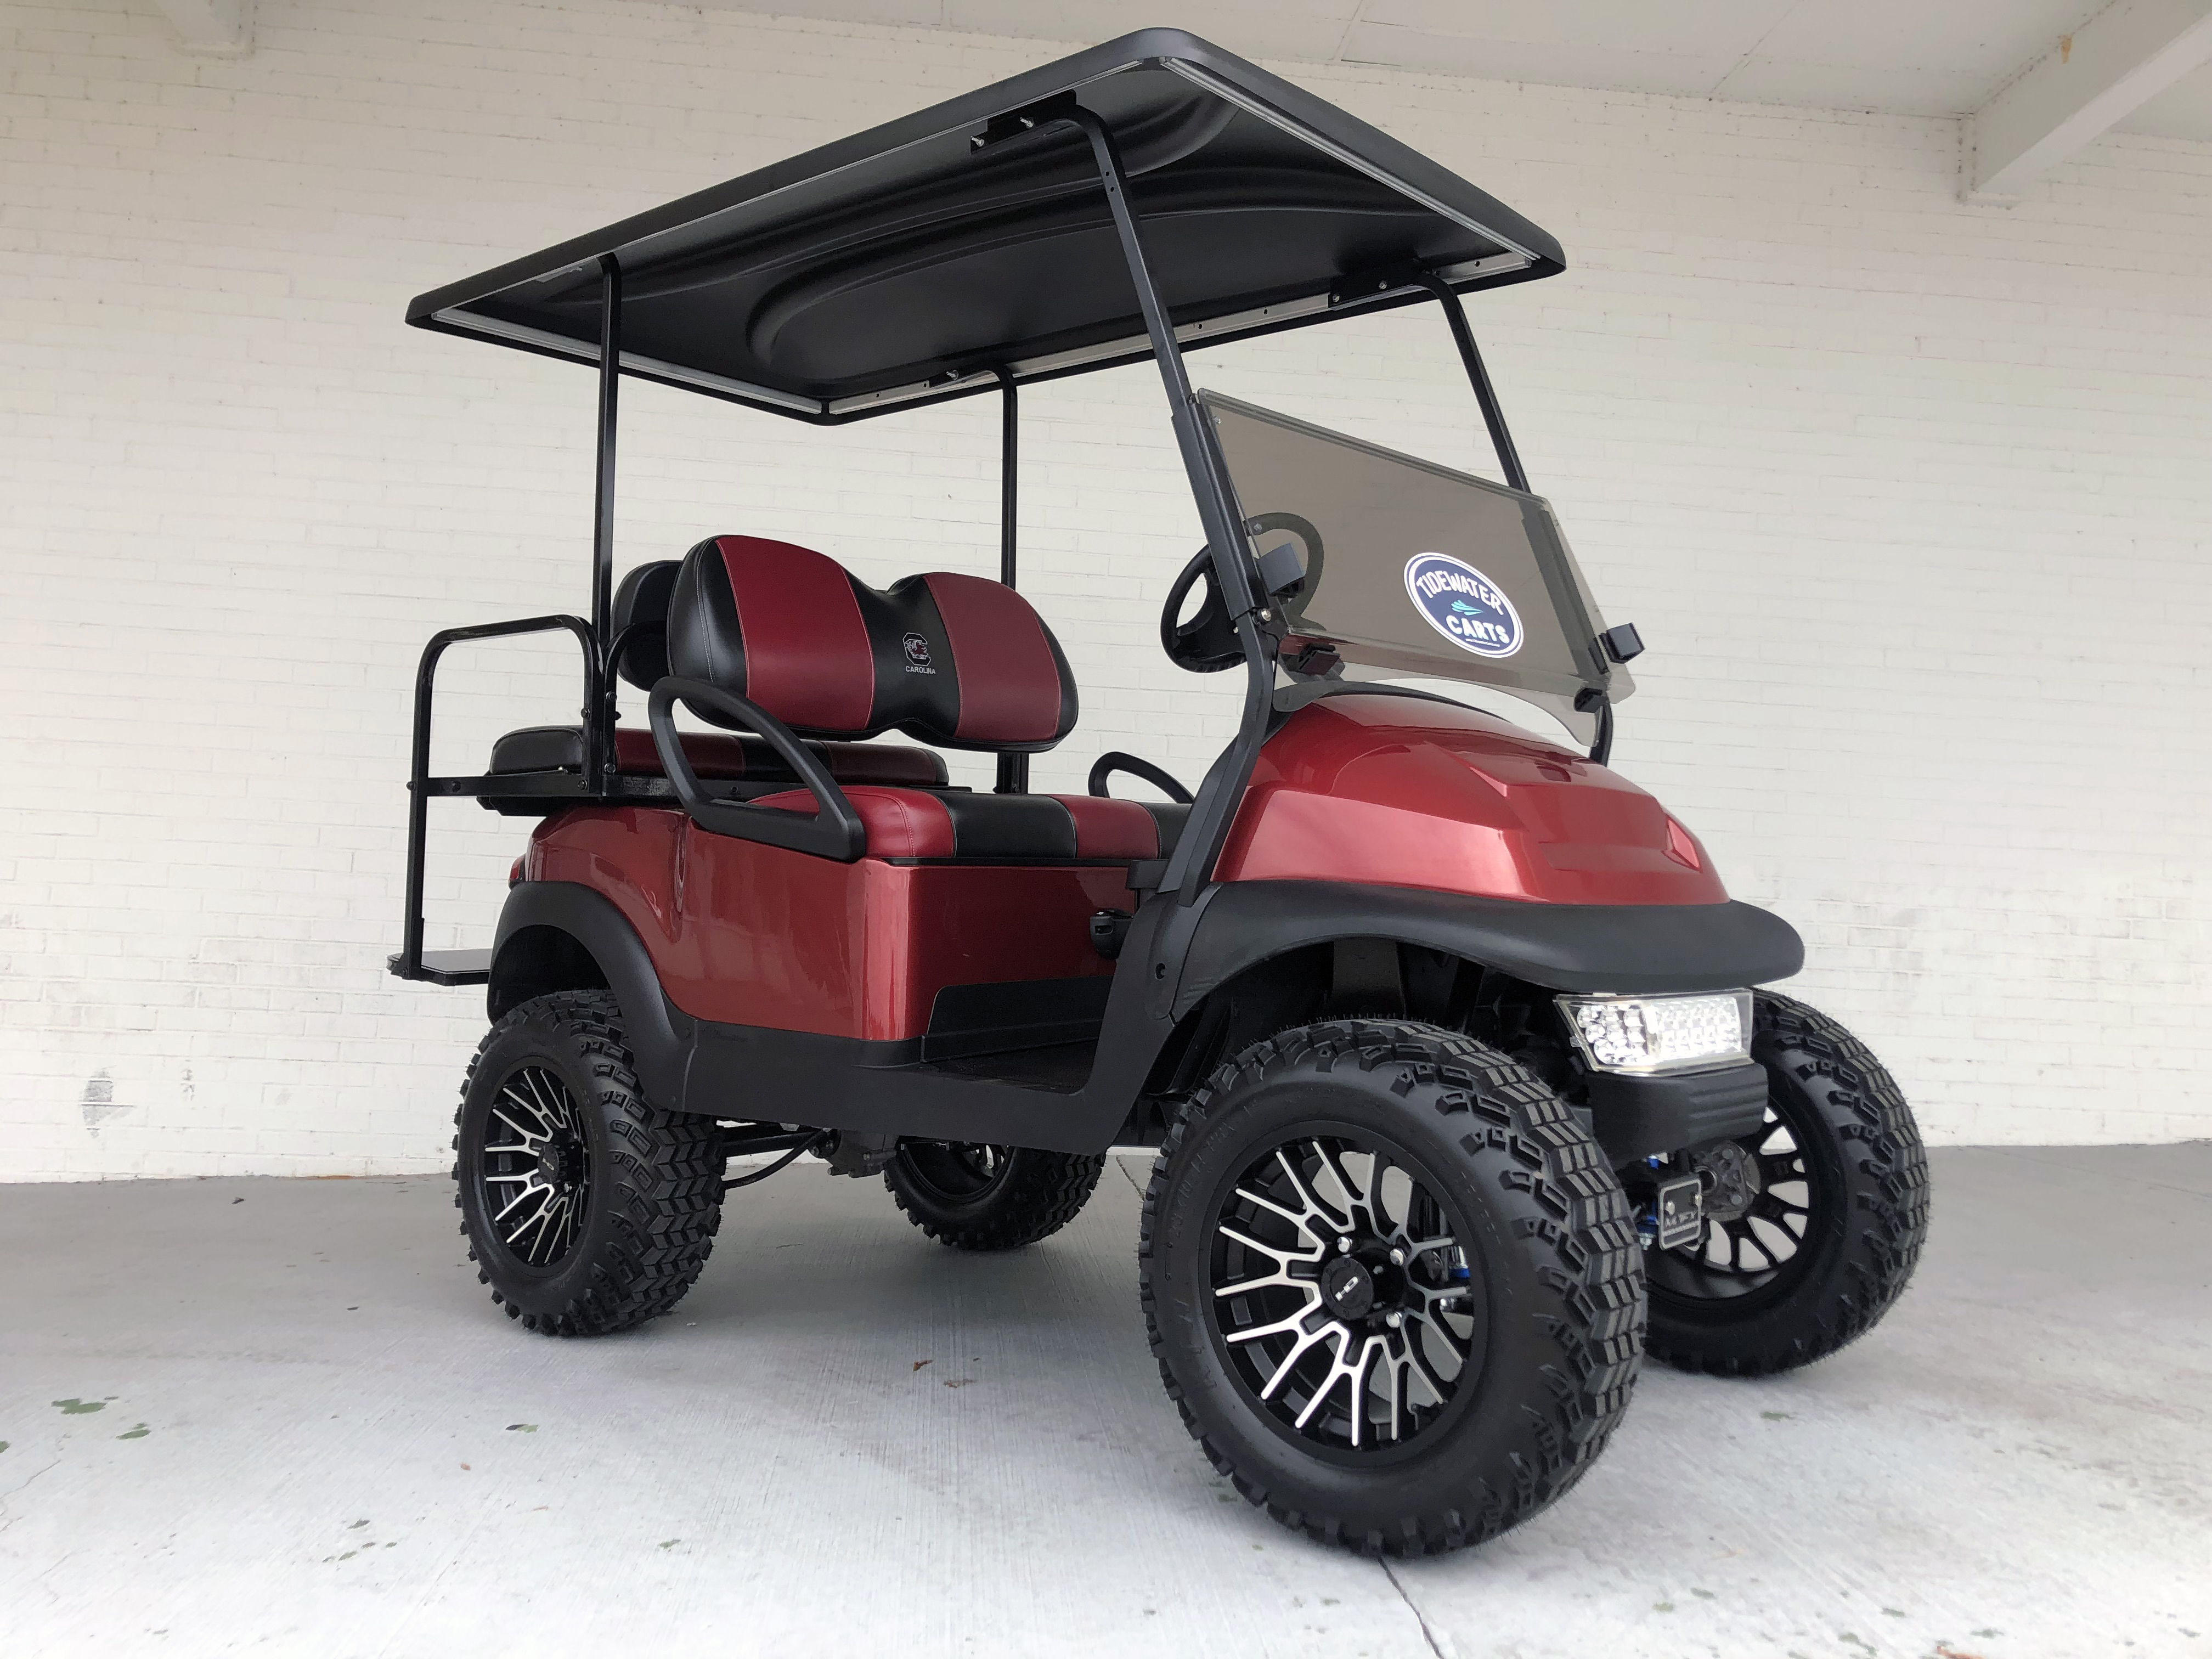 SC Gamecocks Lifted Club Car Golf Cart